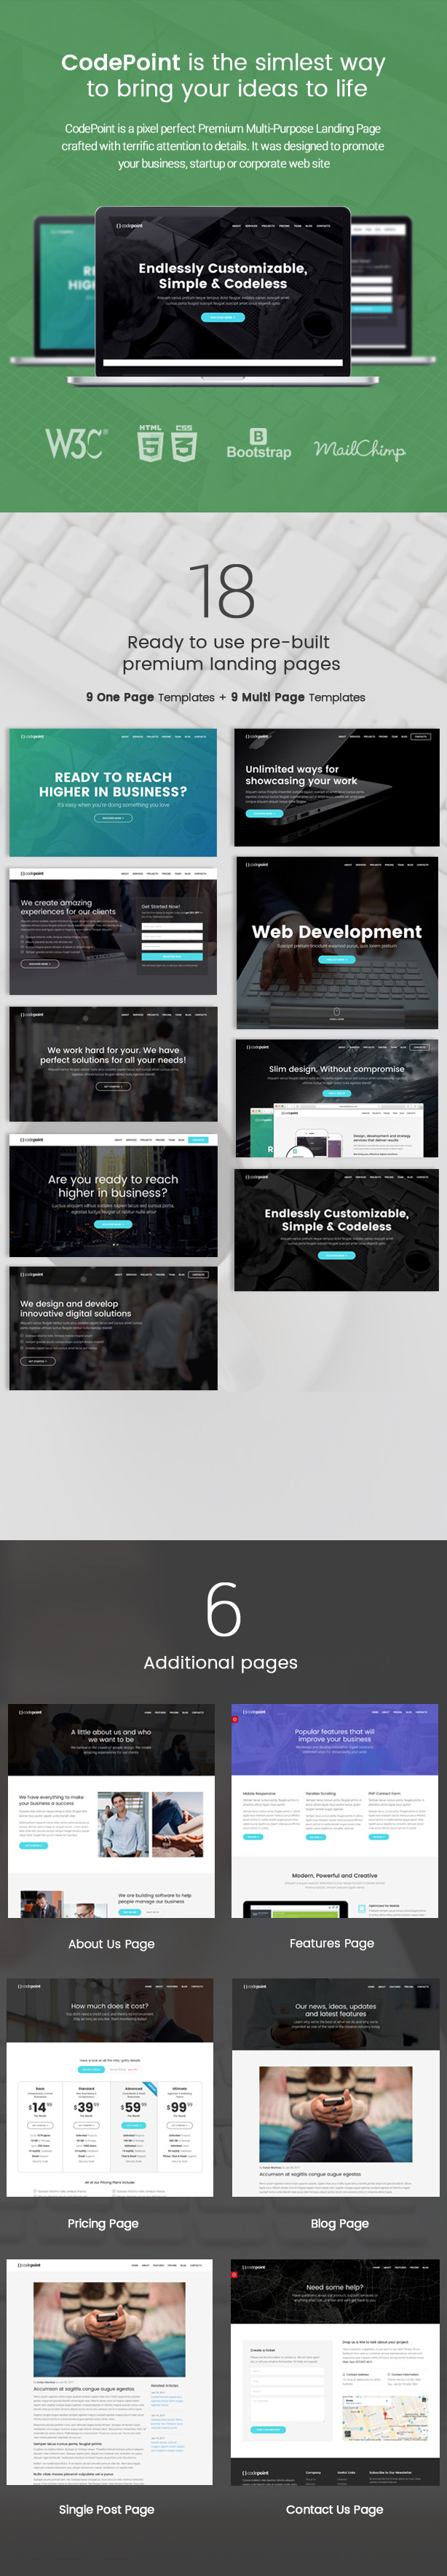 codepoint wordpress theme